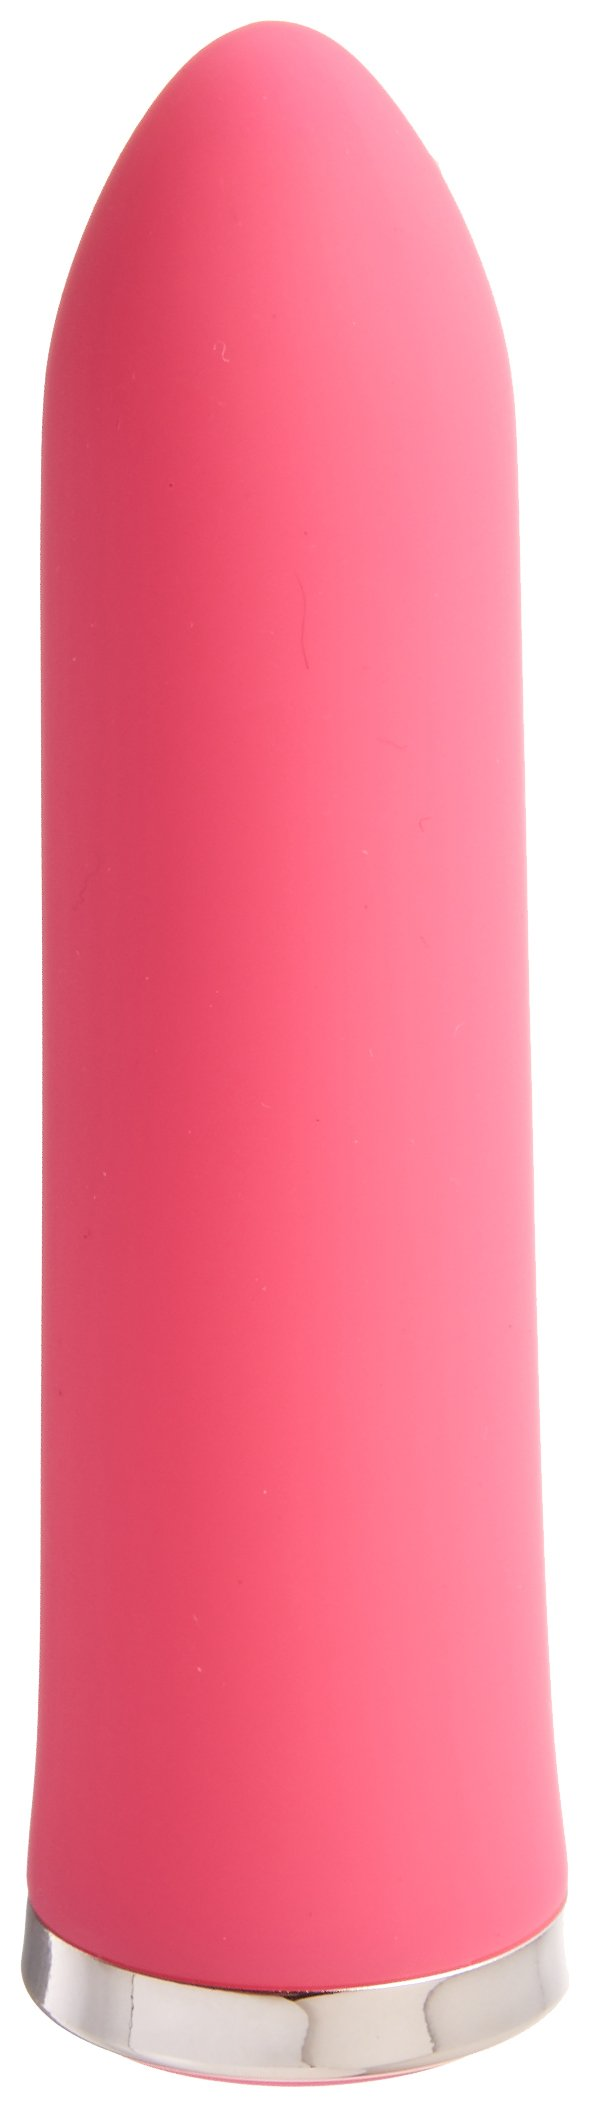 Fredericks of Hollywood Rechargeable Bullet Vibrator, Hot Pink